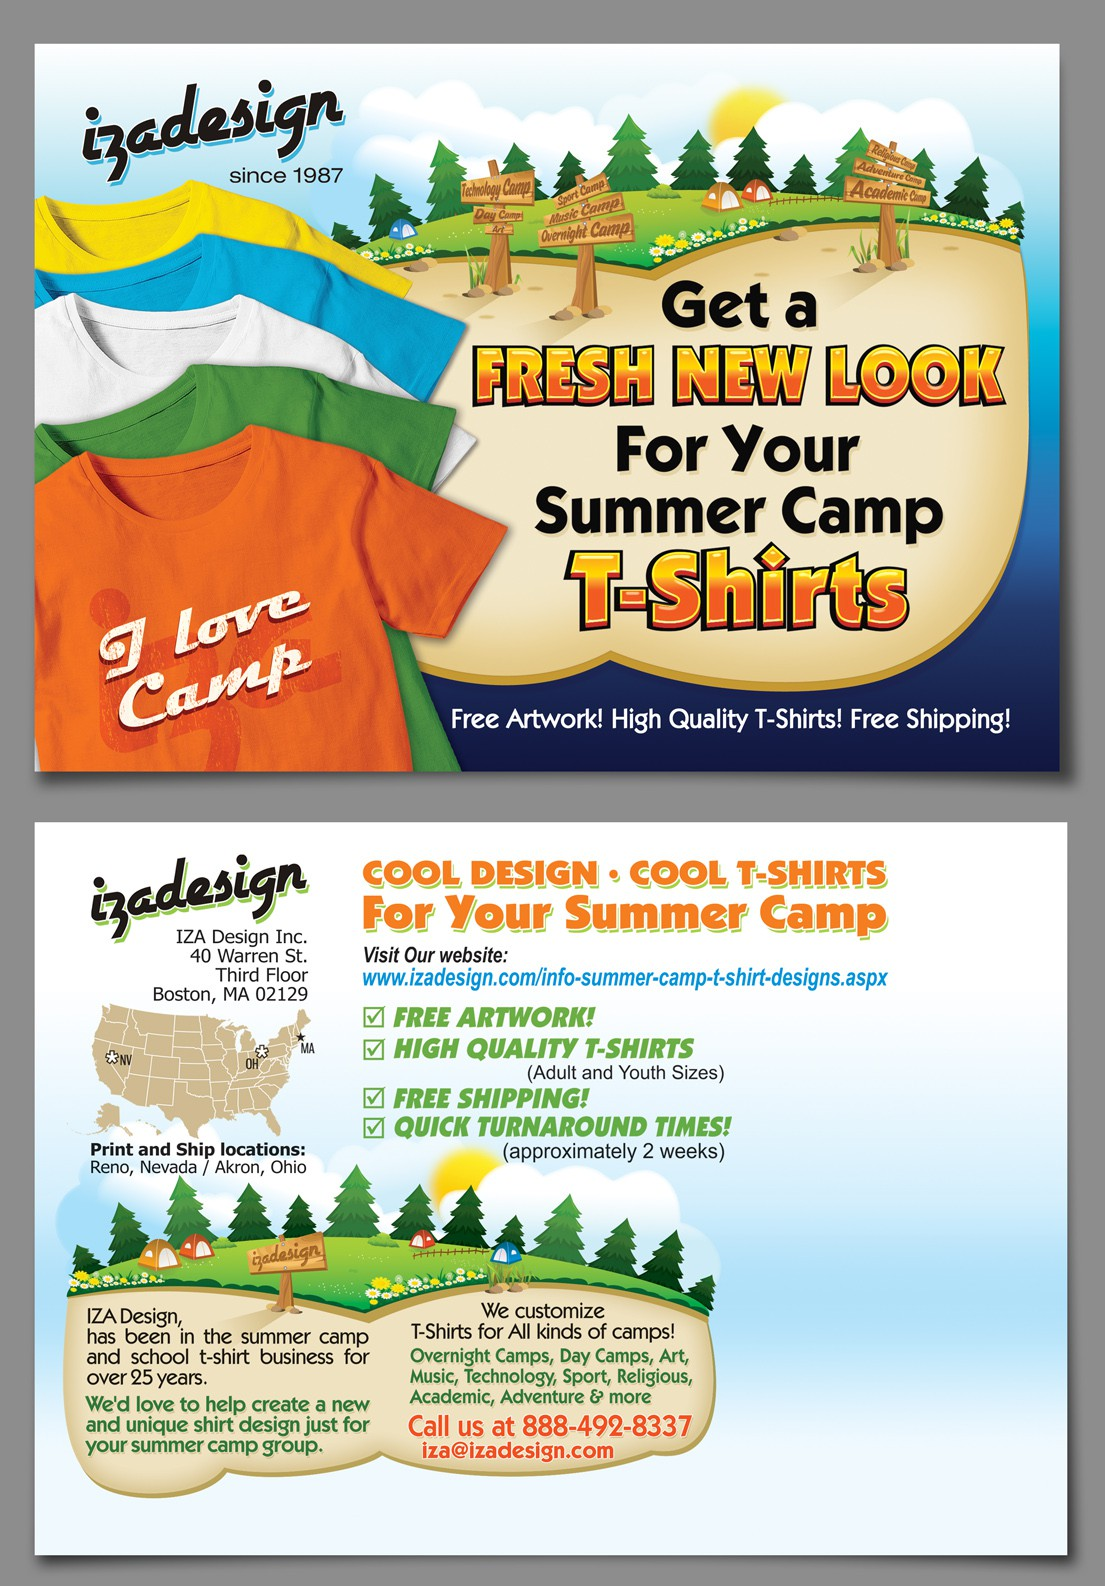 Need Fresh and New Postcard Design for Summer Camp T-Shirt Company